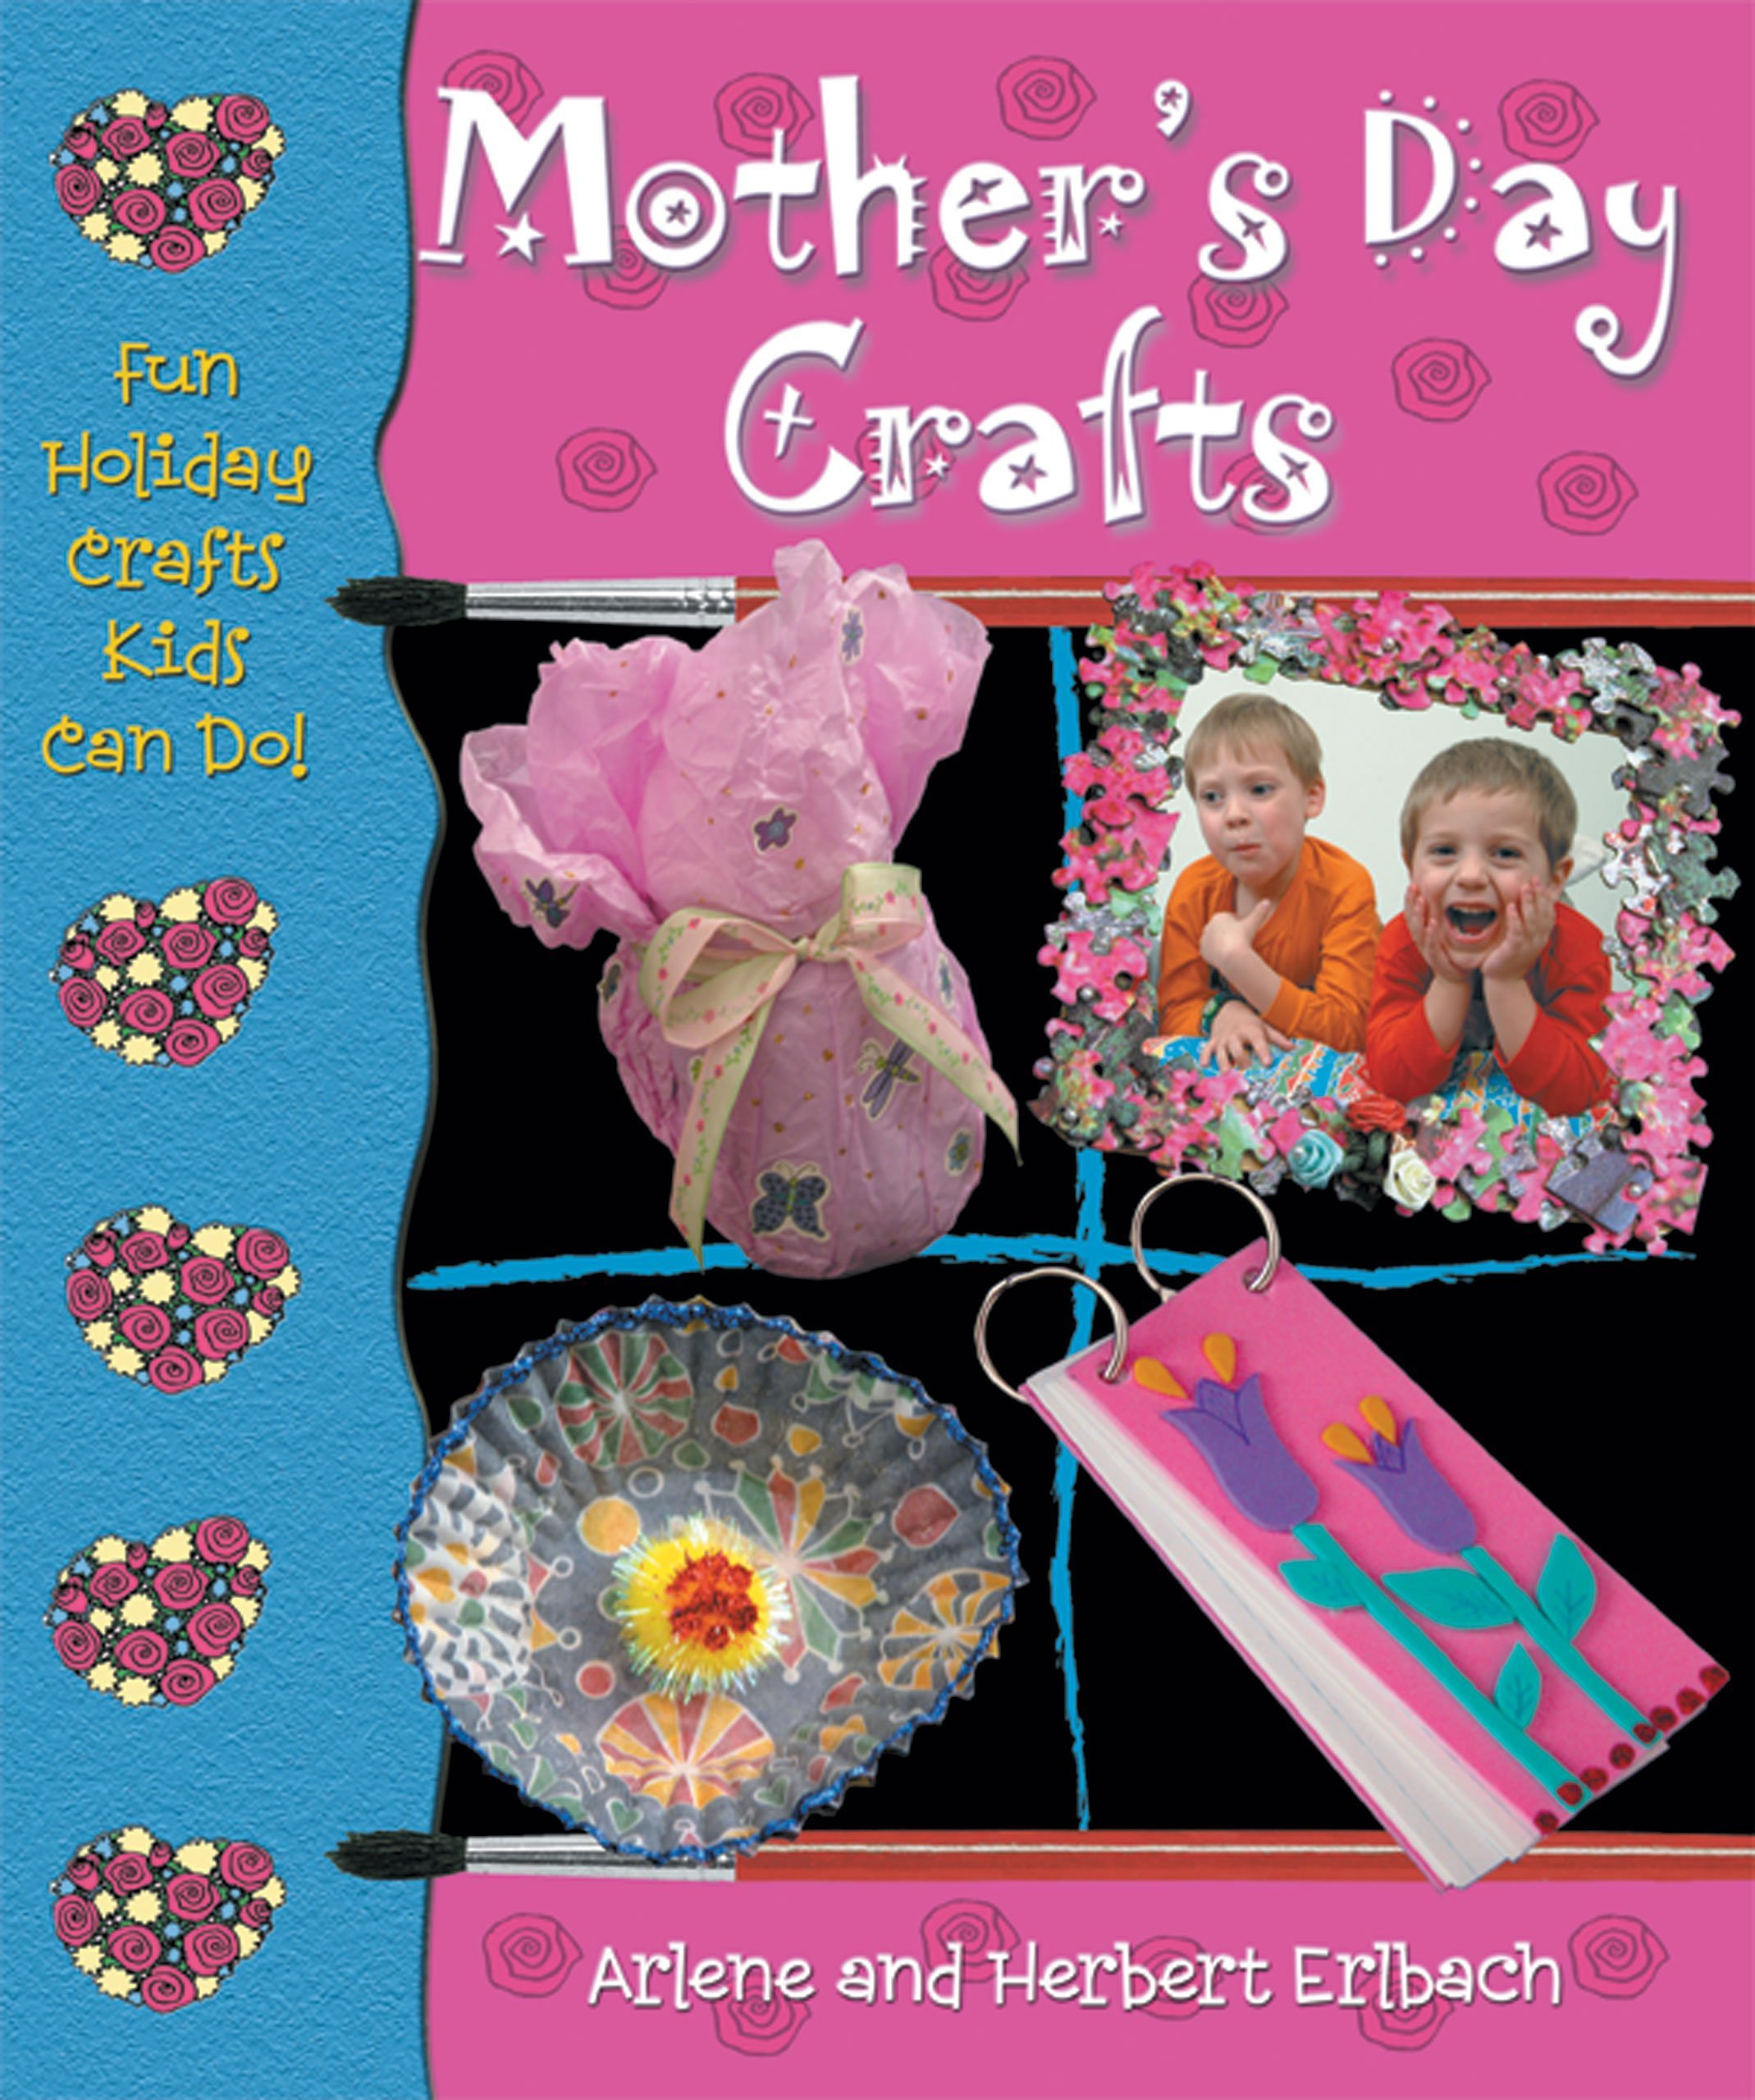 Mothers Day Crafts Fun Holiday Crafts Kids Can Do Arlene Erlbach